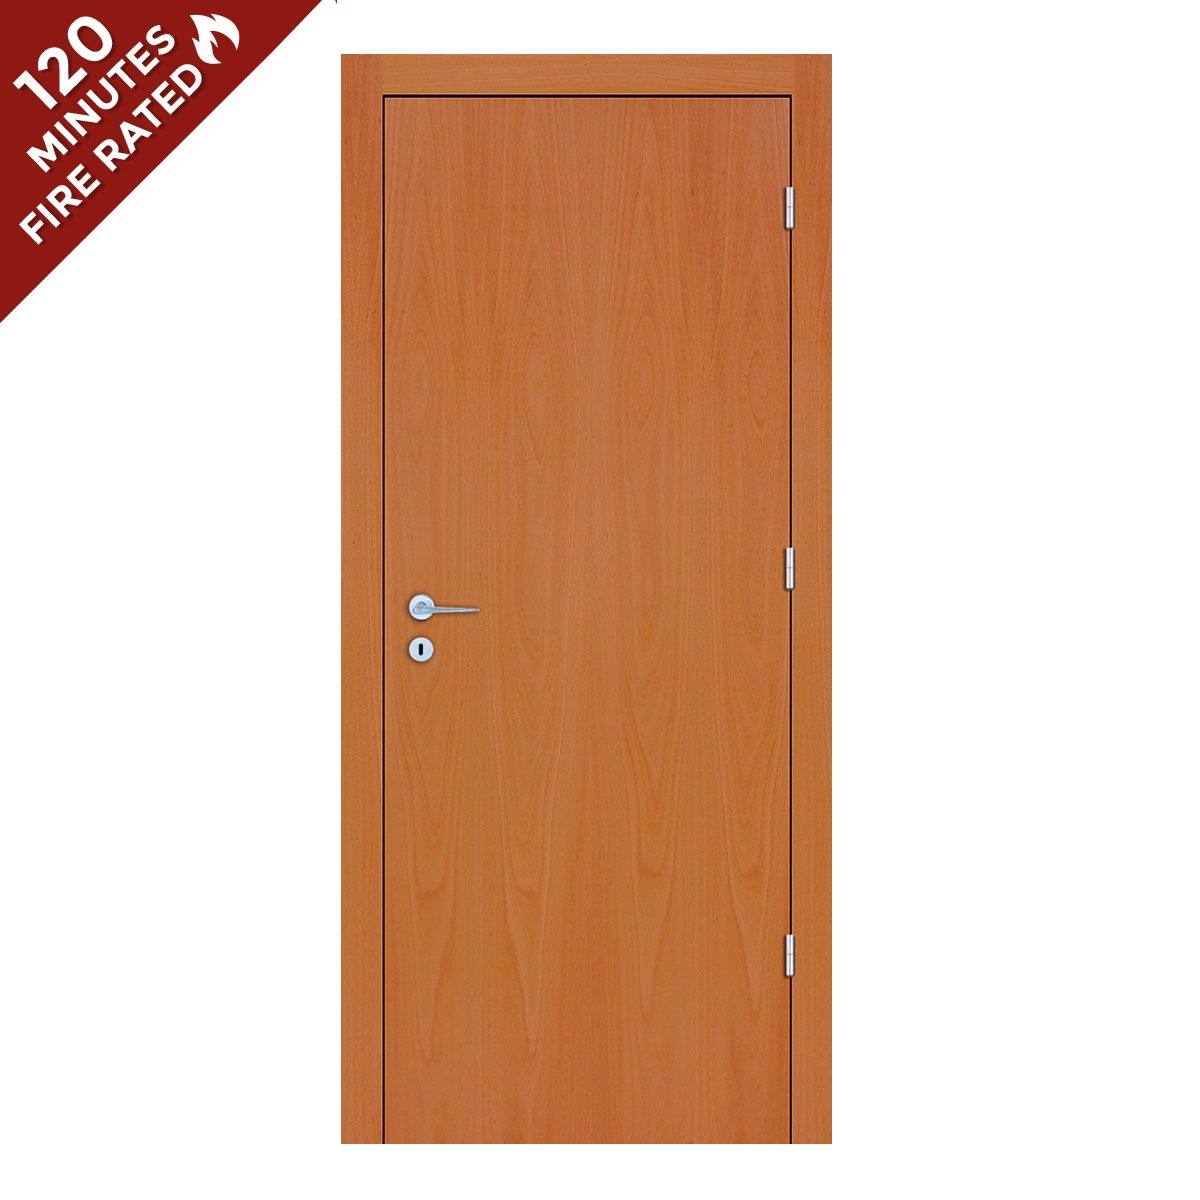 Beech Single Door FD120